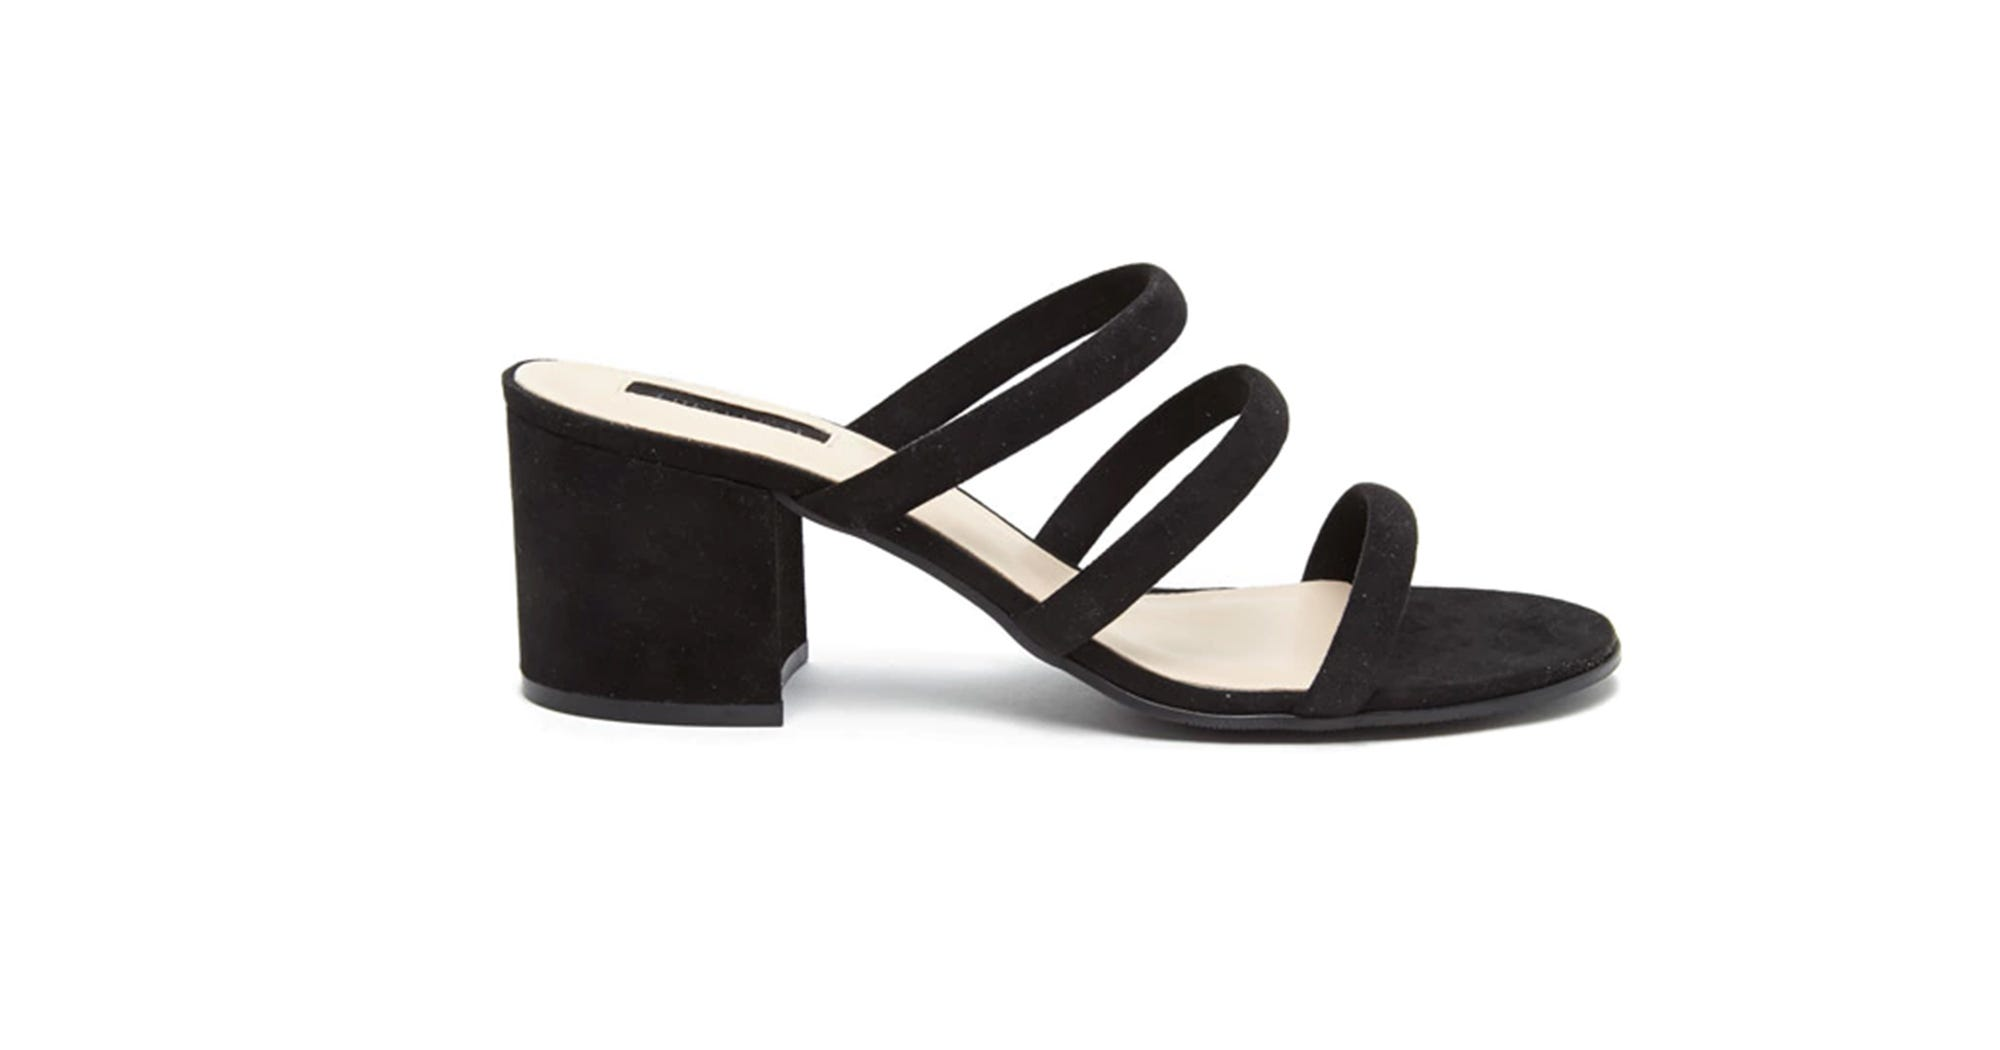 109bc60a8dc5 Forever 21 Strappy Mules - Affordable Summer Sandals